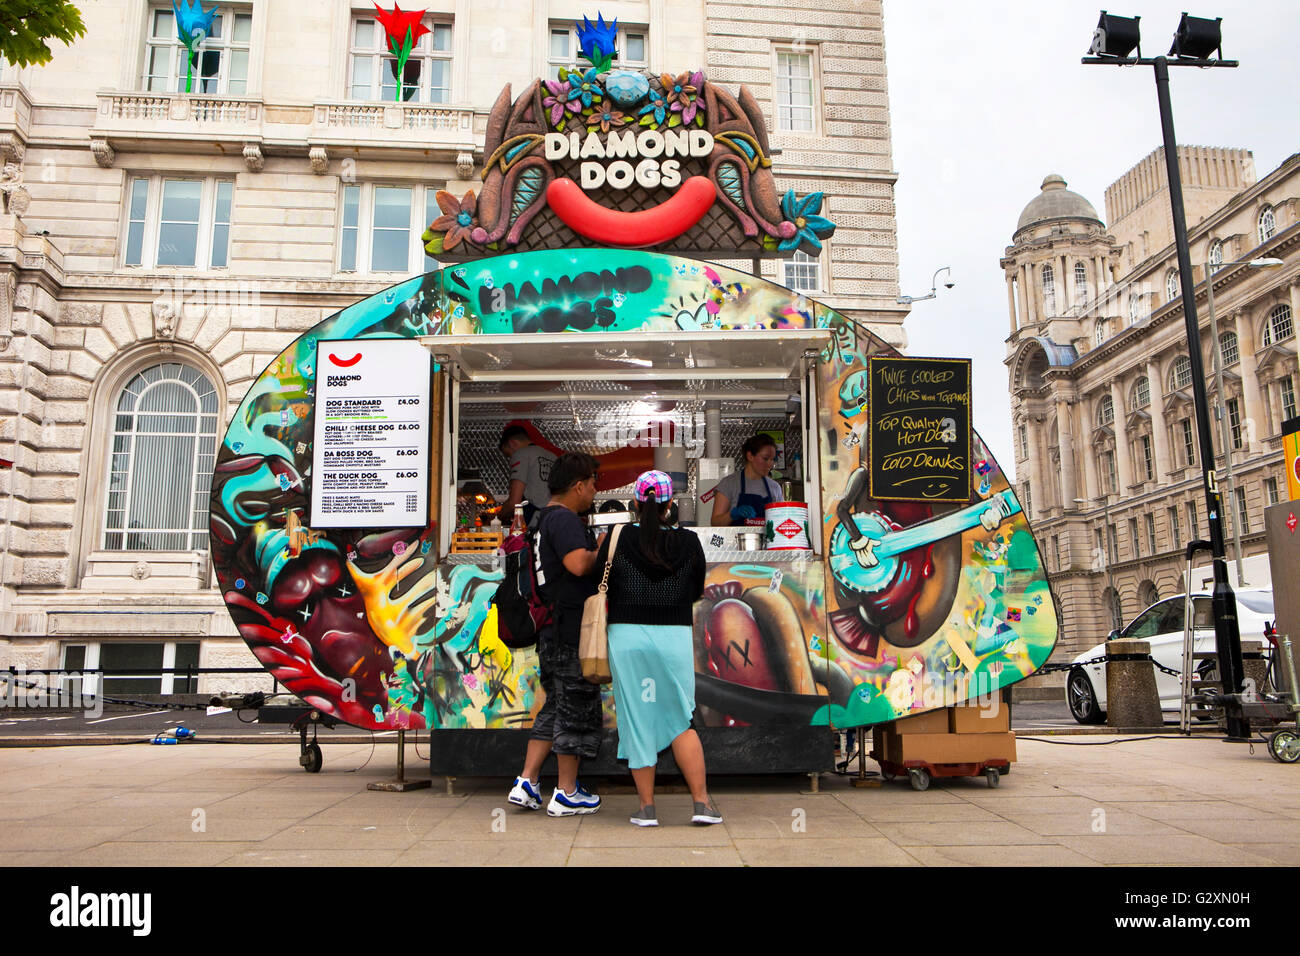 Diamond Dogs a Food stall van at the Afric Oye festival in Sefton Park, Liverpool, Merseyside, UK - Stock Image